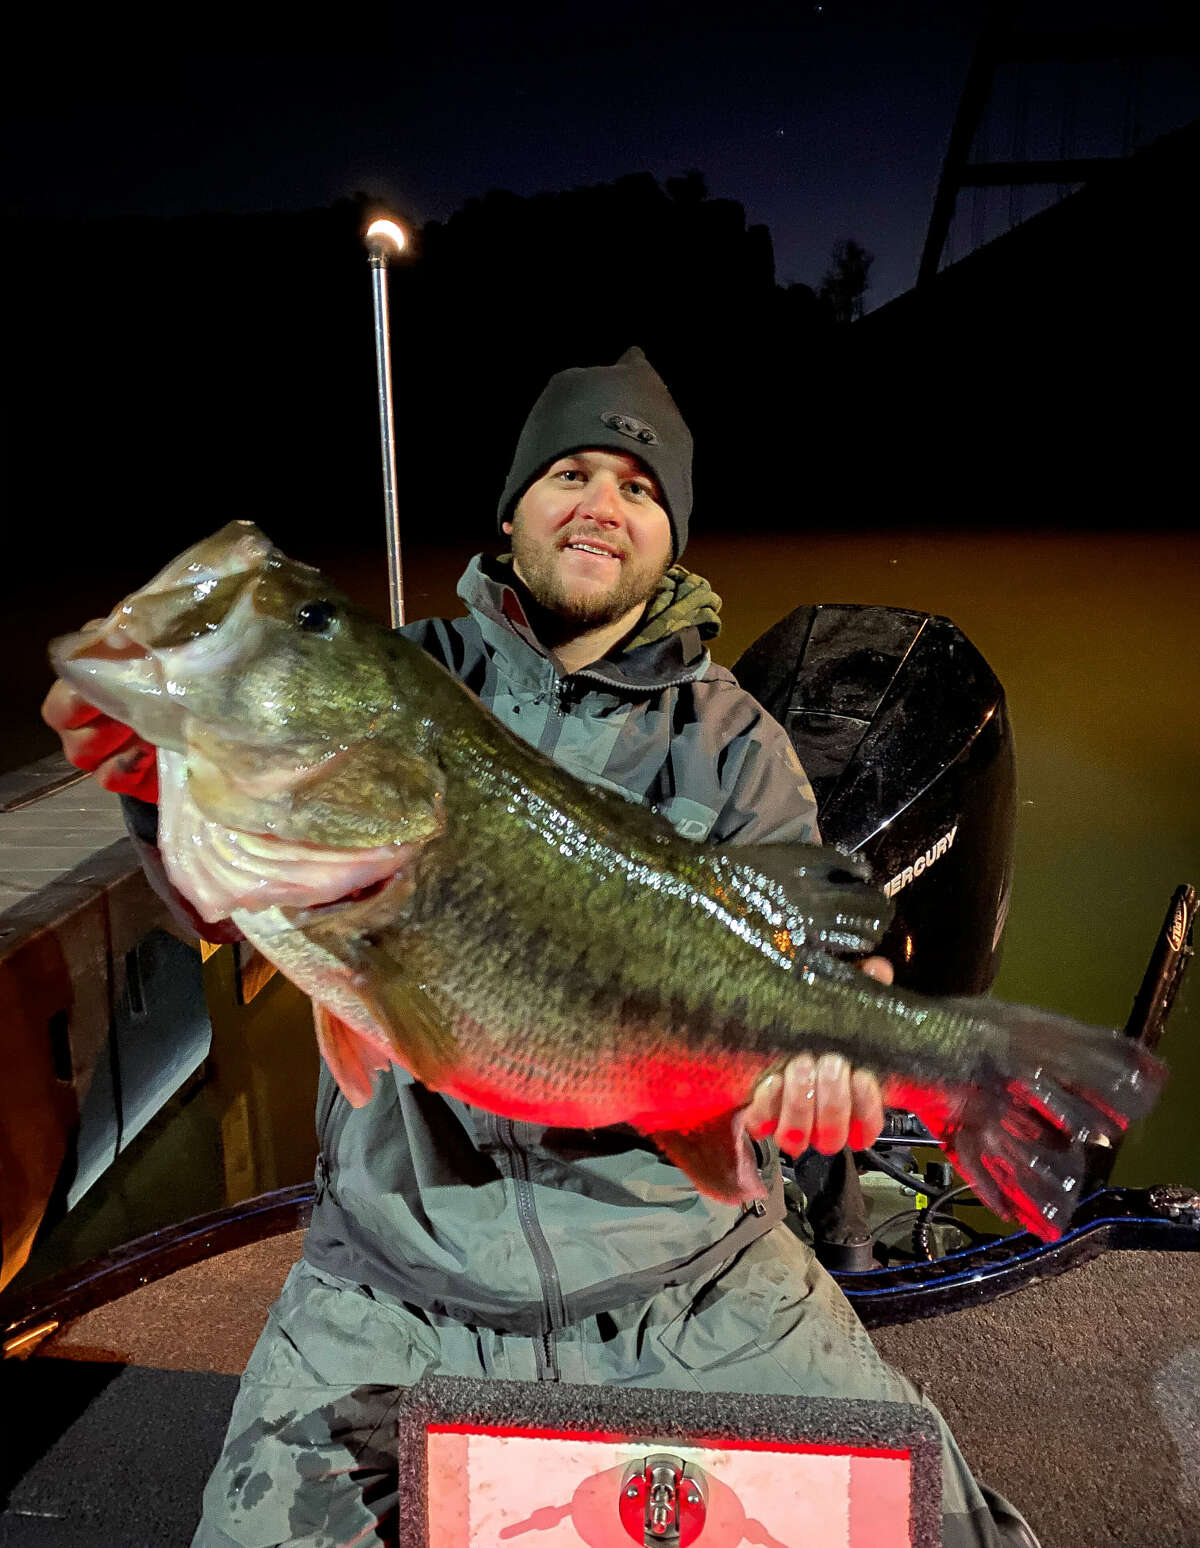 CJ Oates from Lago Vista reeled in a massive 13.02-pound largemouth bass while fishing in Lake Austin on January 14.